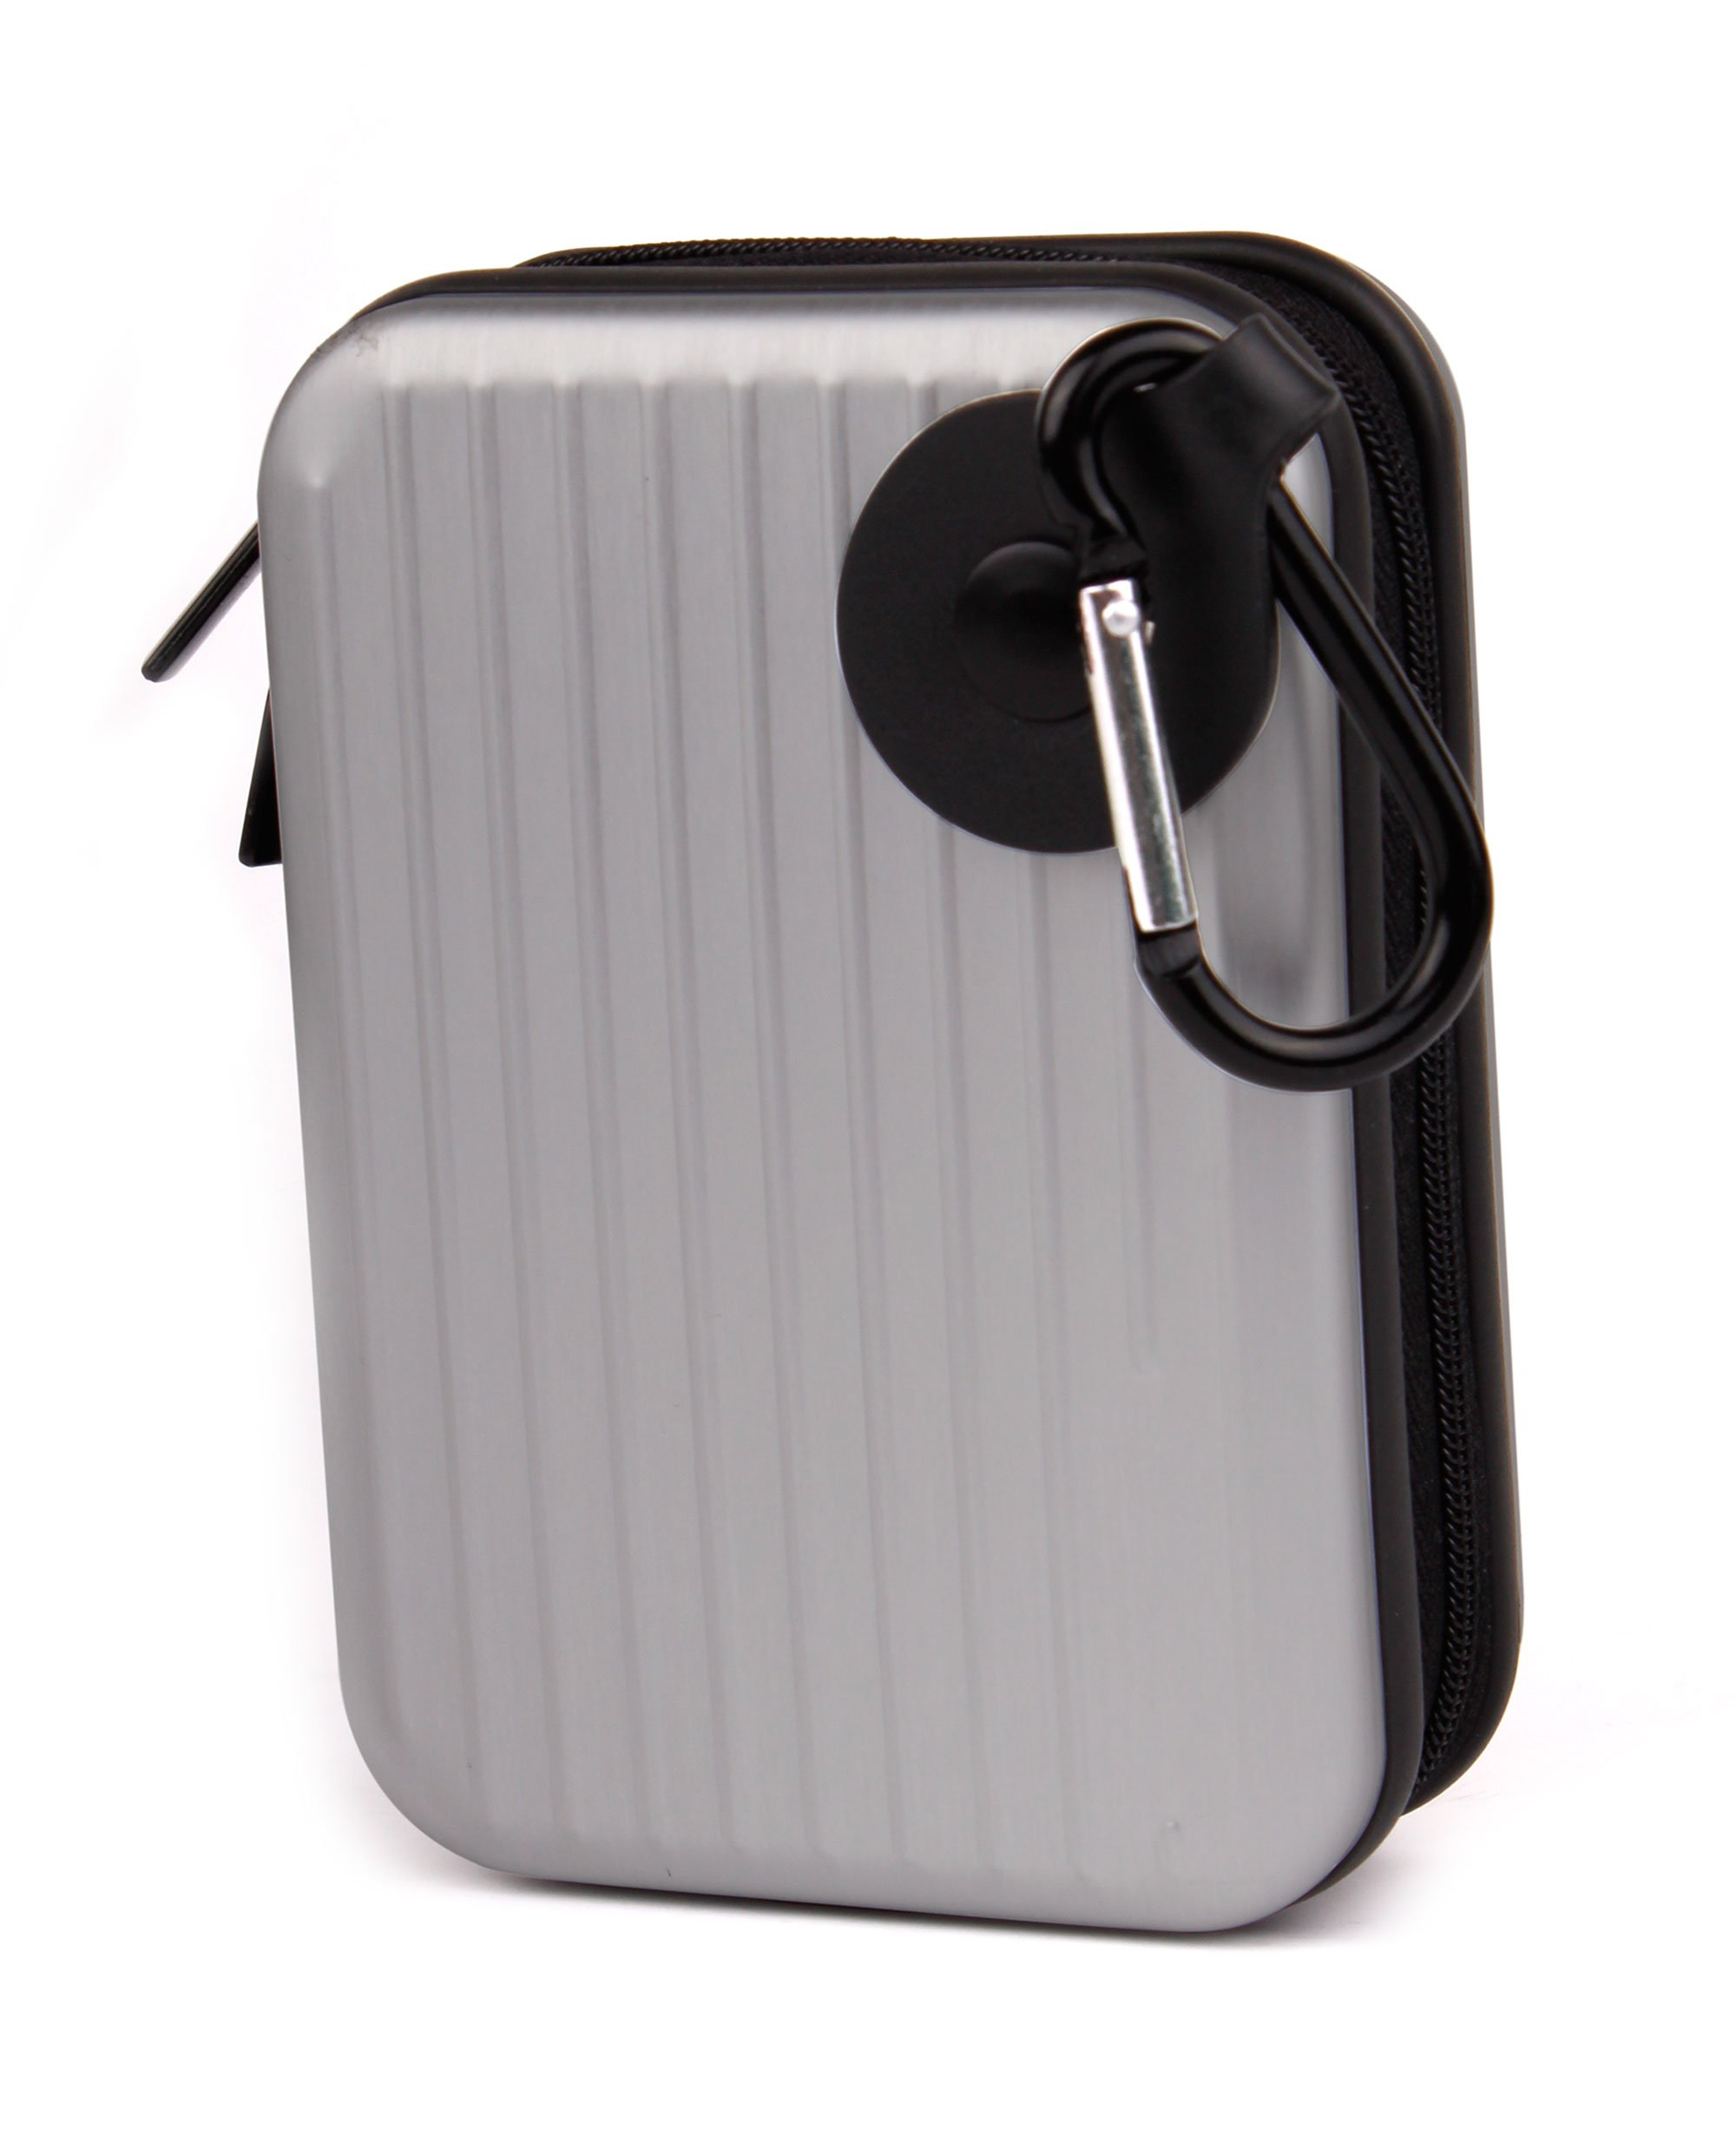 TG-620 TG-320 DURAGADGET Silver Shock Proof Protective Armoured Carry Case with Carabiner /& Foam Pads for Olympus TG-810 TG-610 Wrist Strap Worth /£4.99